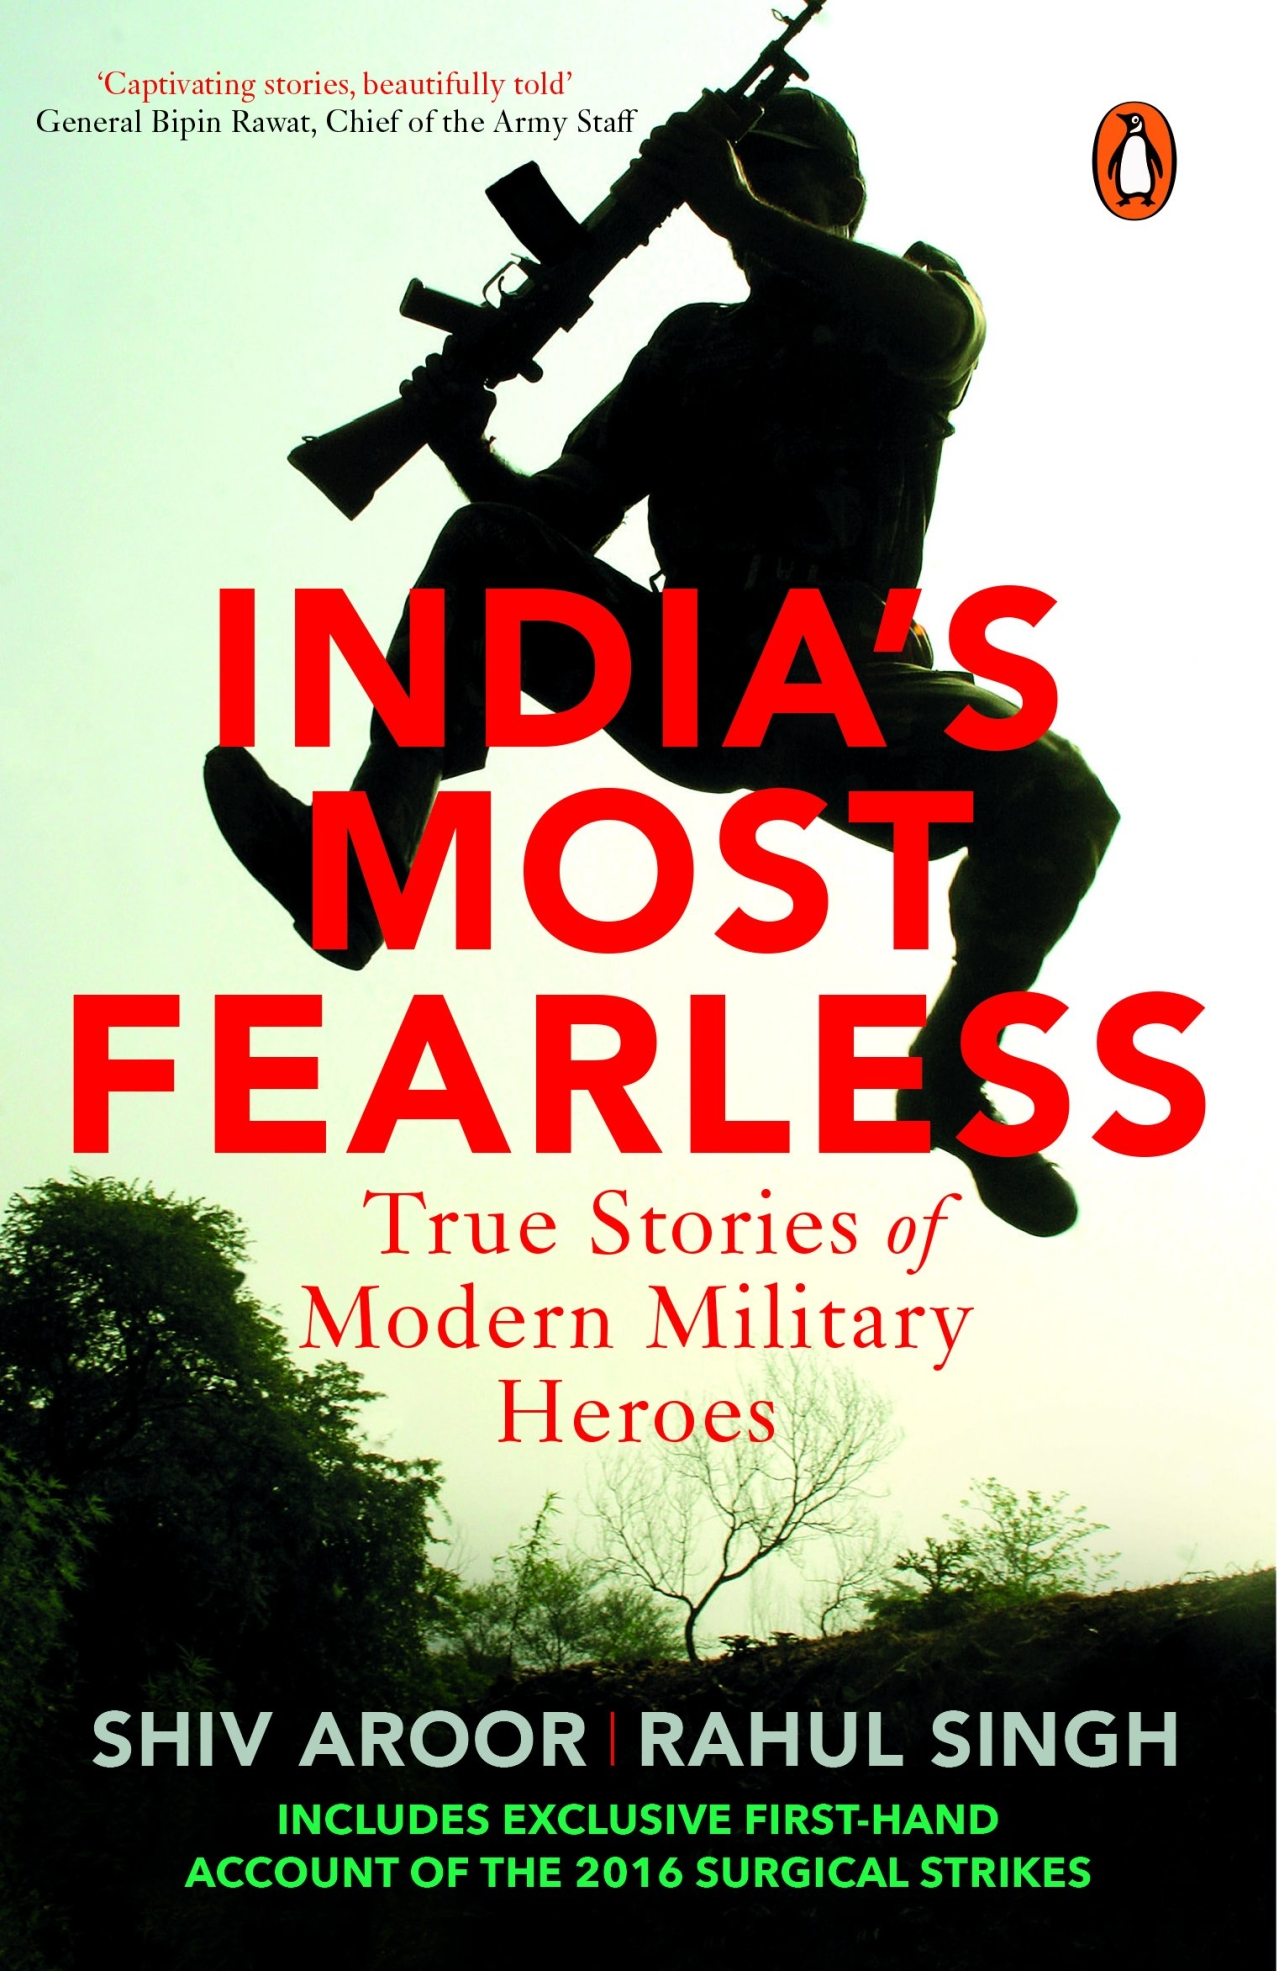 'India's Most Fearless: True Stories of Modern Military Heroes' by Shiv Aroor and Rahul Singh